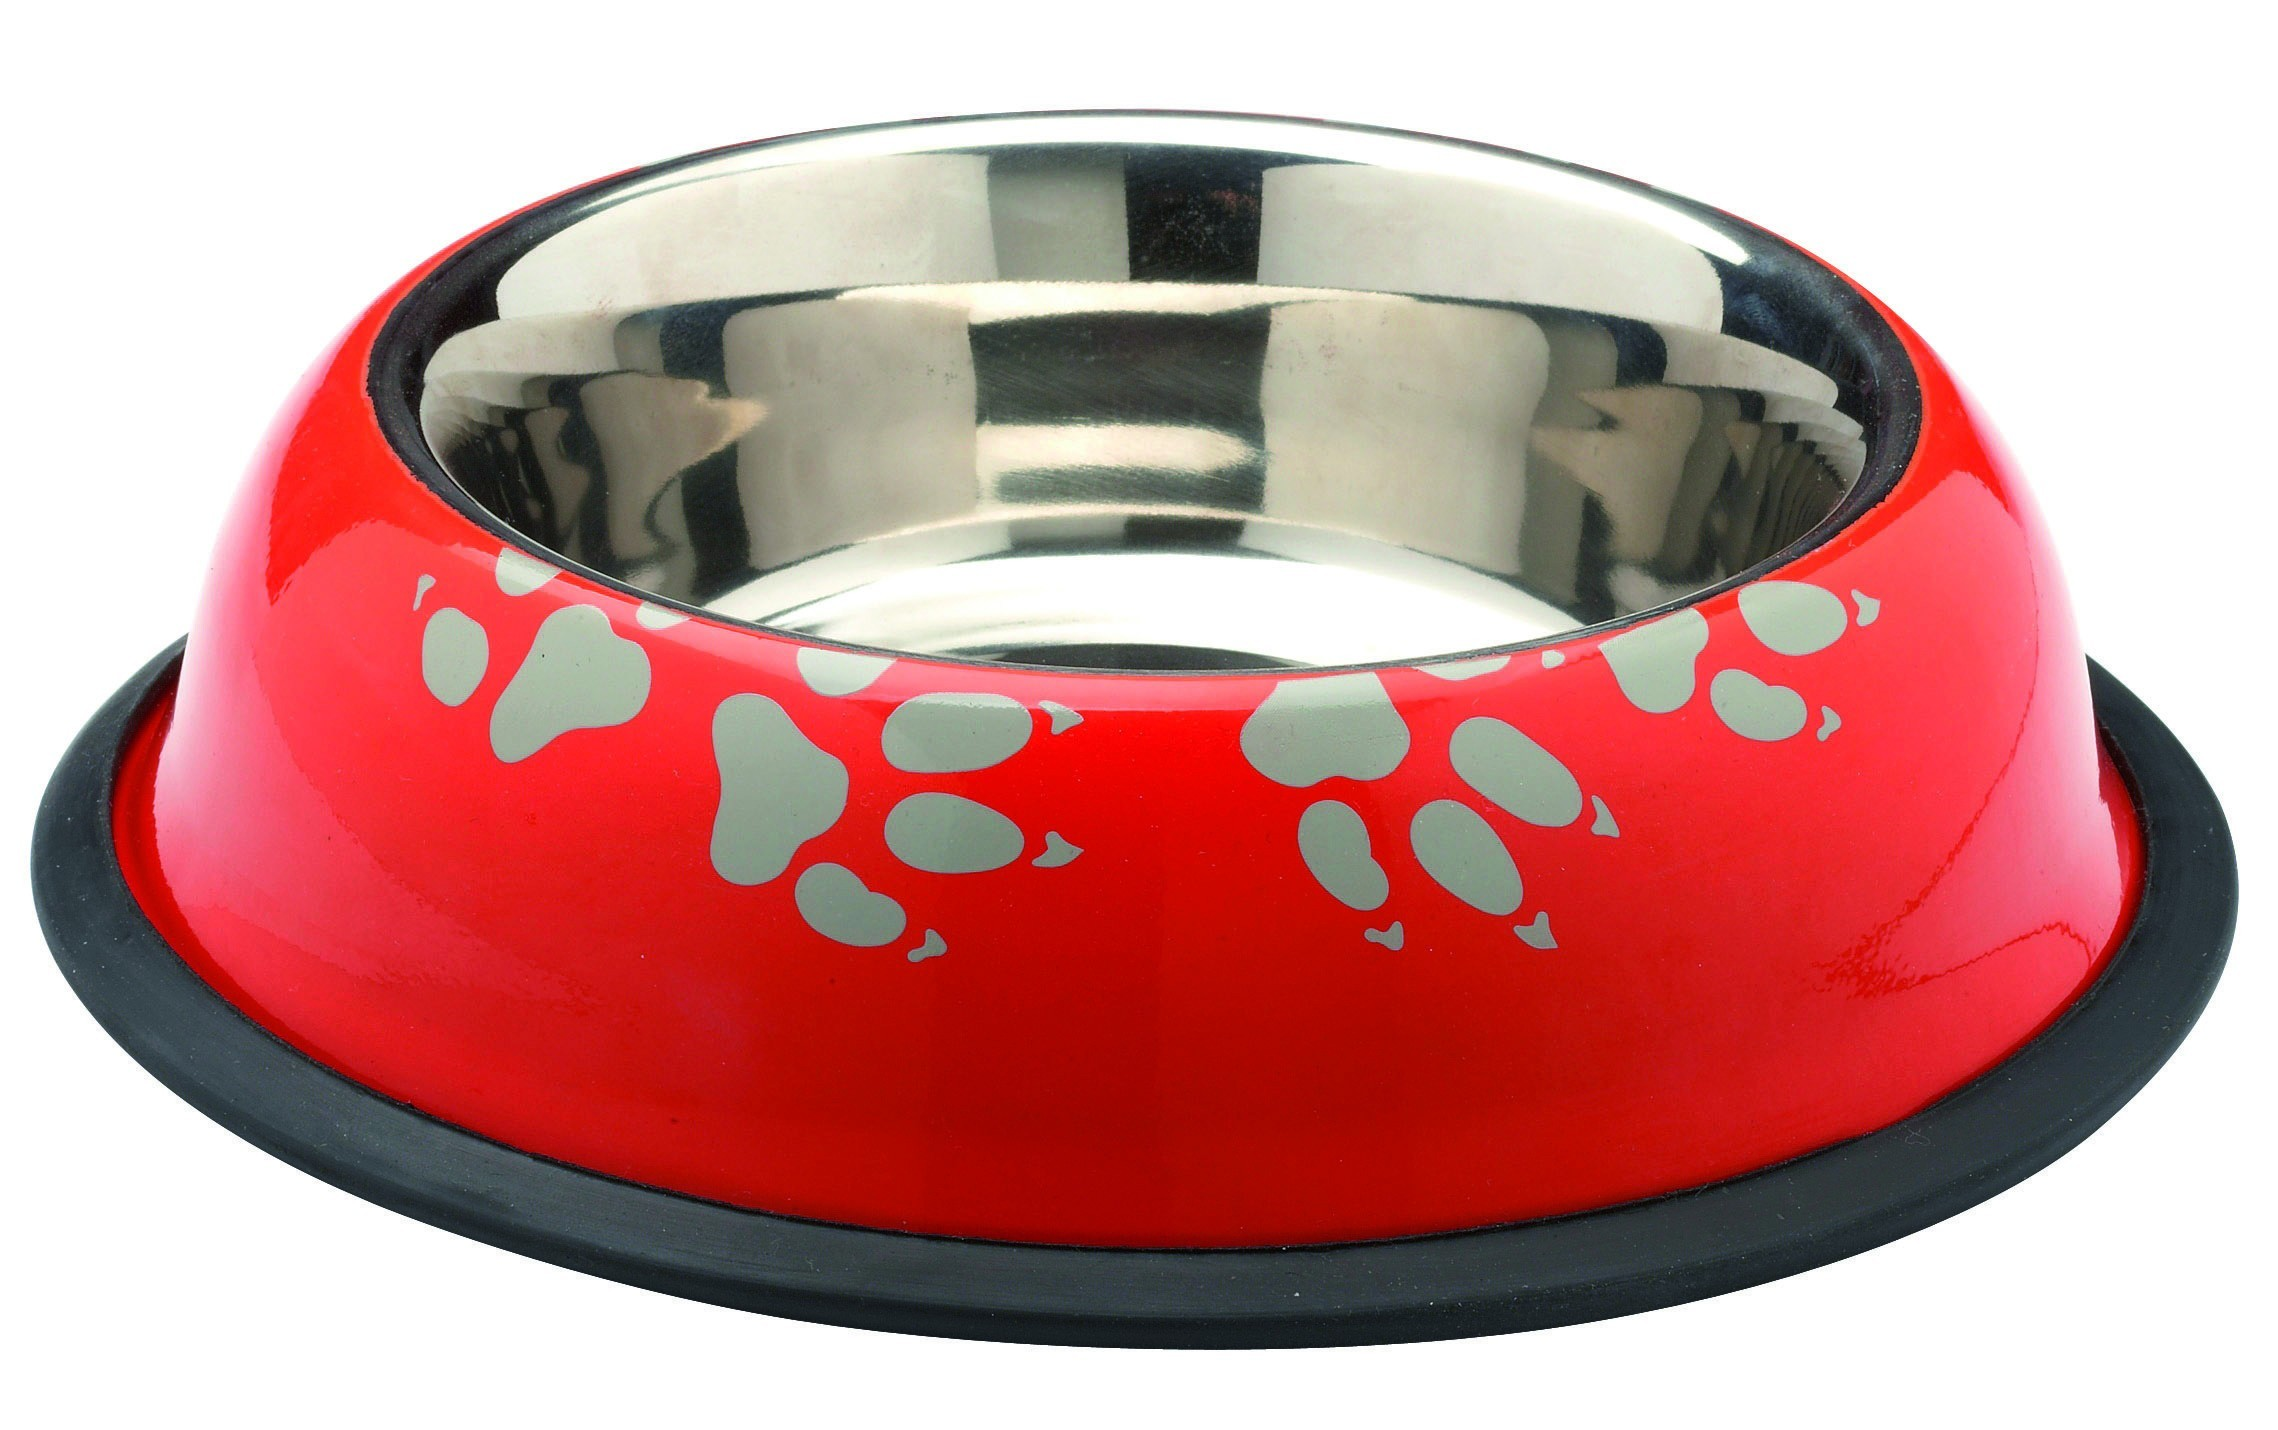 Gamelle pour chien inox Ribambelle, Couleur: Orange, Taille: 20